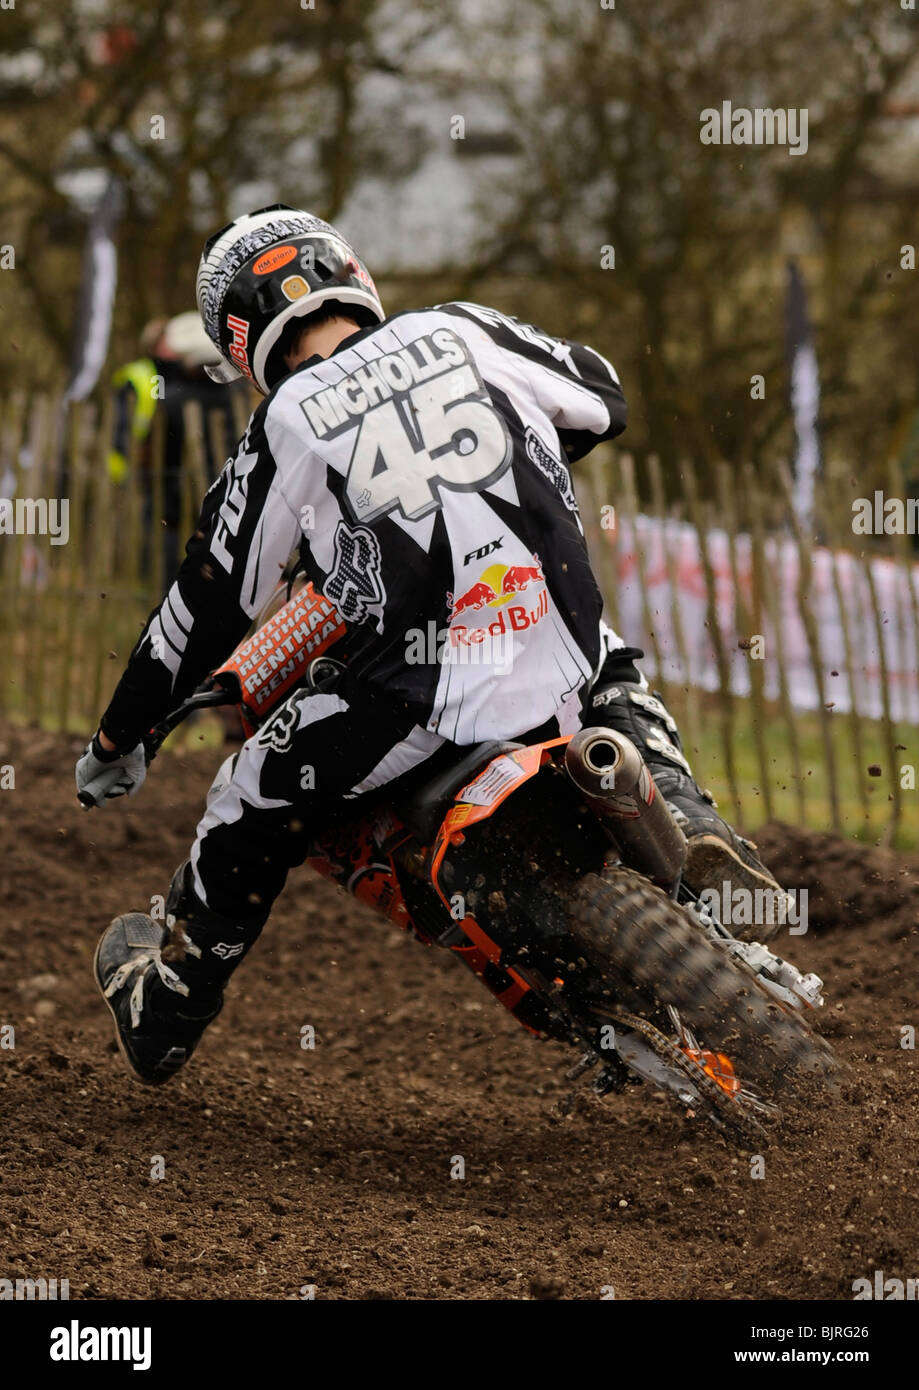 Jake Nicholls in action at Red Bull Pro Nationals at Foxhill, Swindon 14th March 2010. - Stock Image